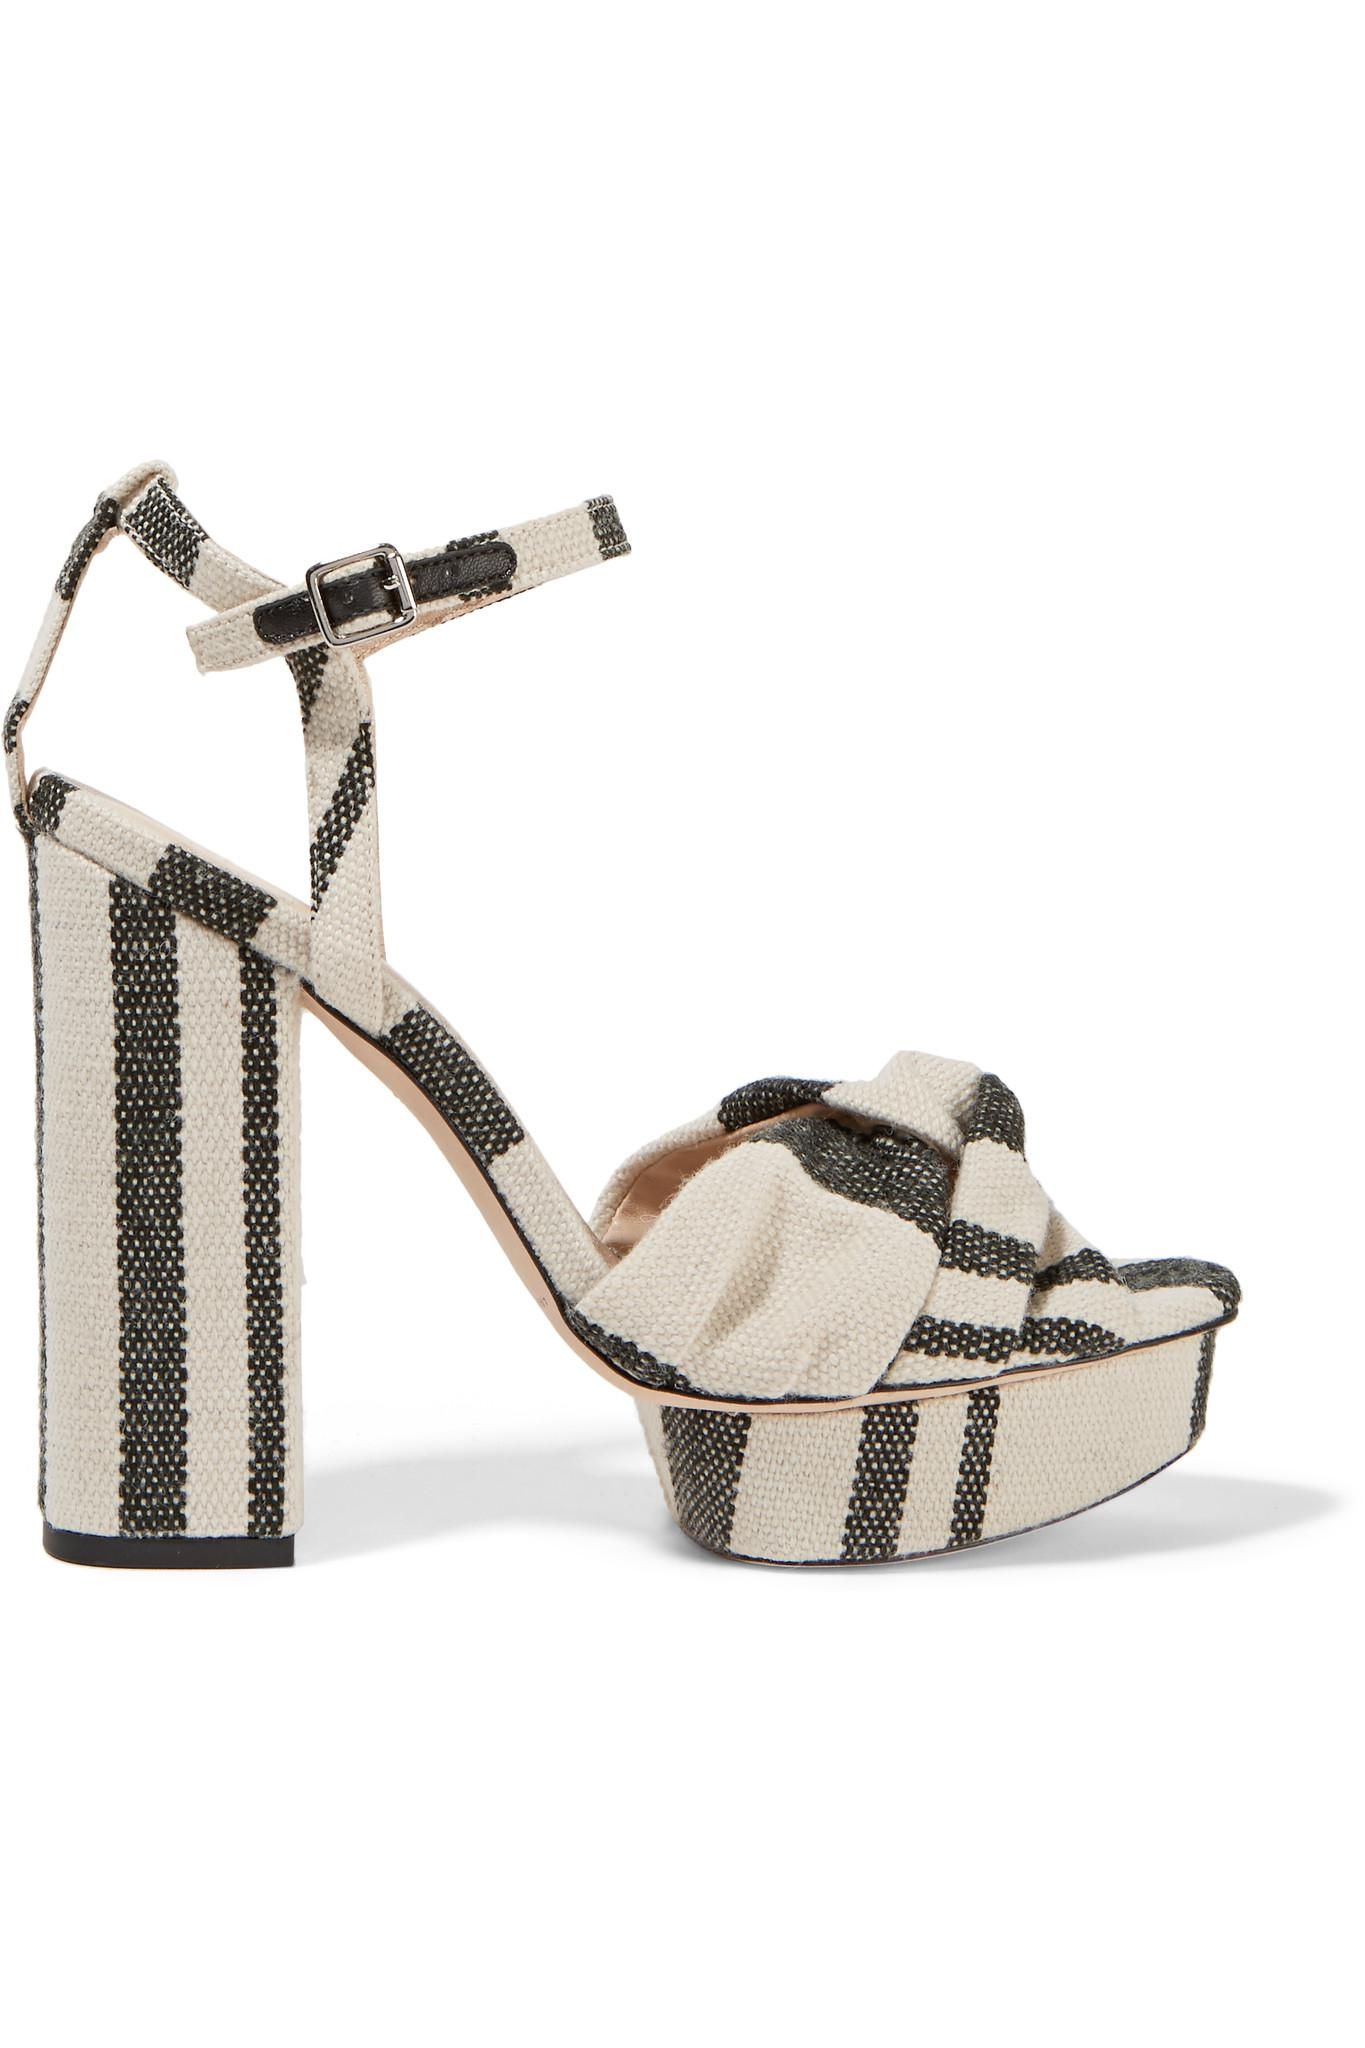 65d6a1775cb2 Lyst - Loeffler Randall Arbella Twist-front Canvas Sandals in White